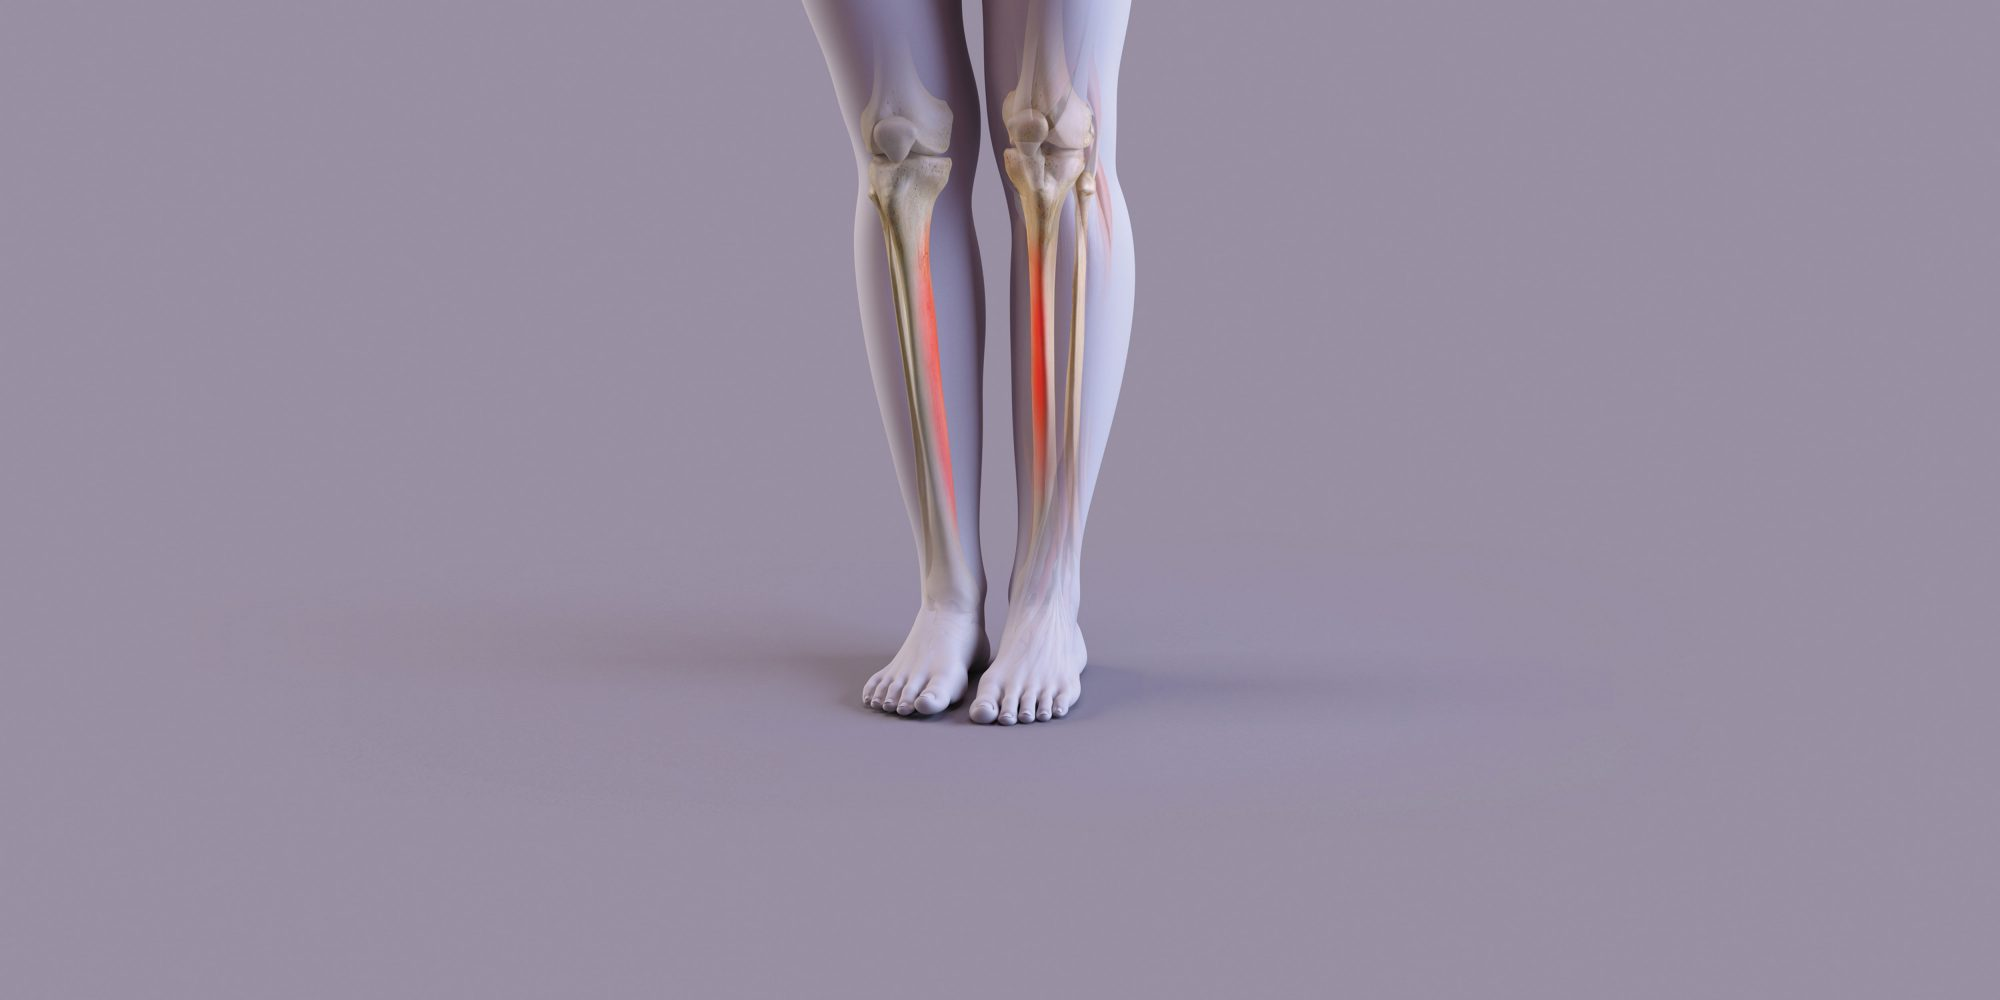 10-shin-splints-illustration